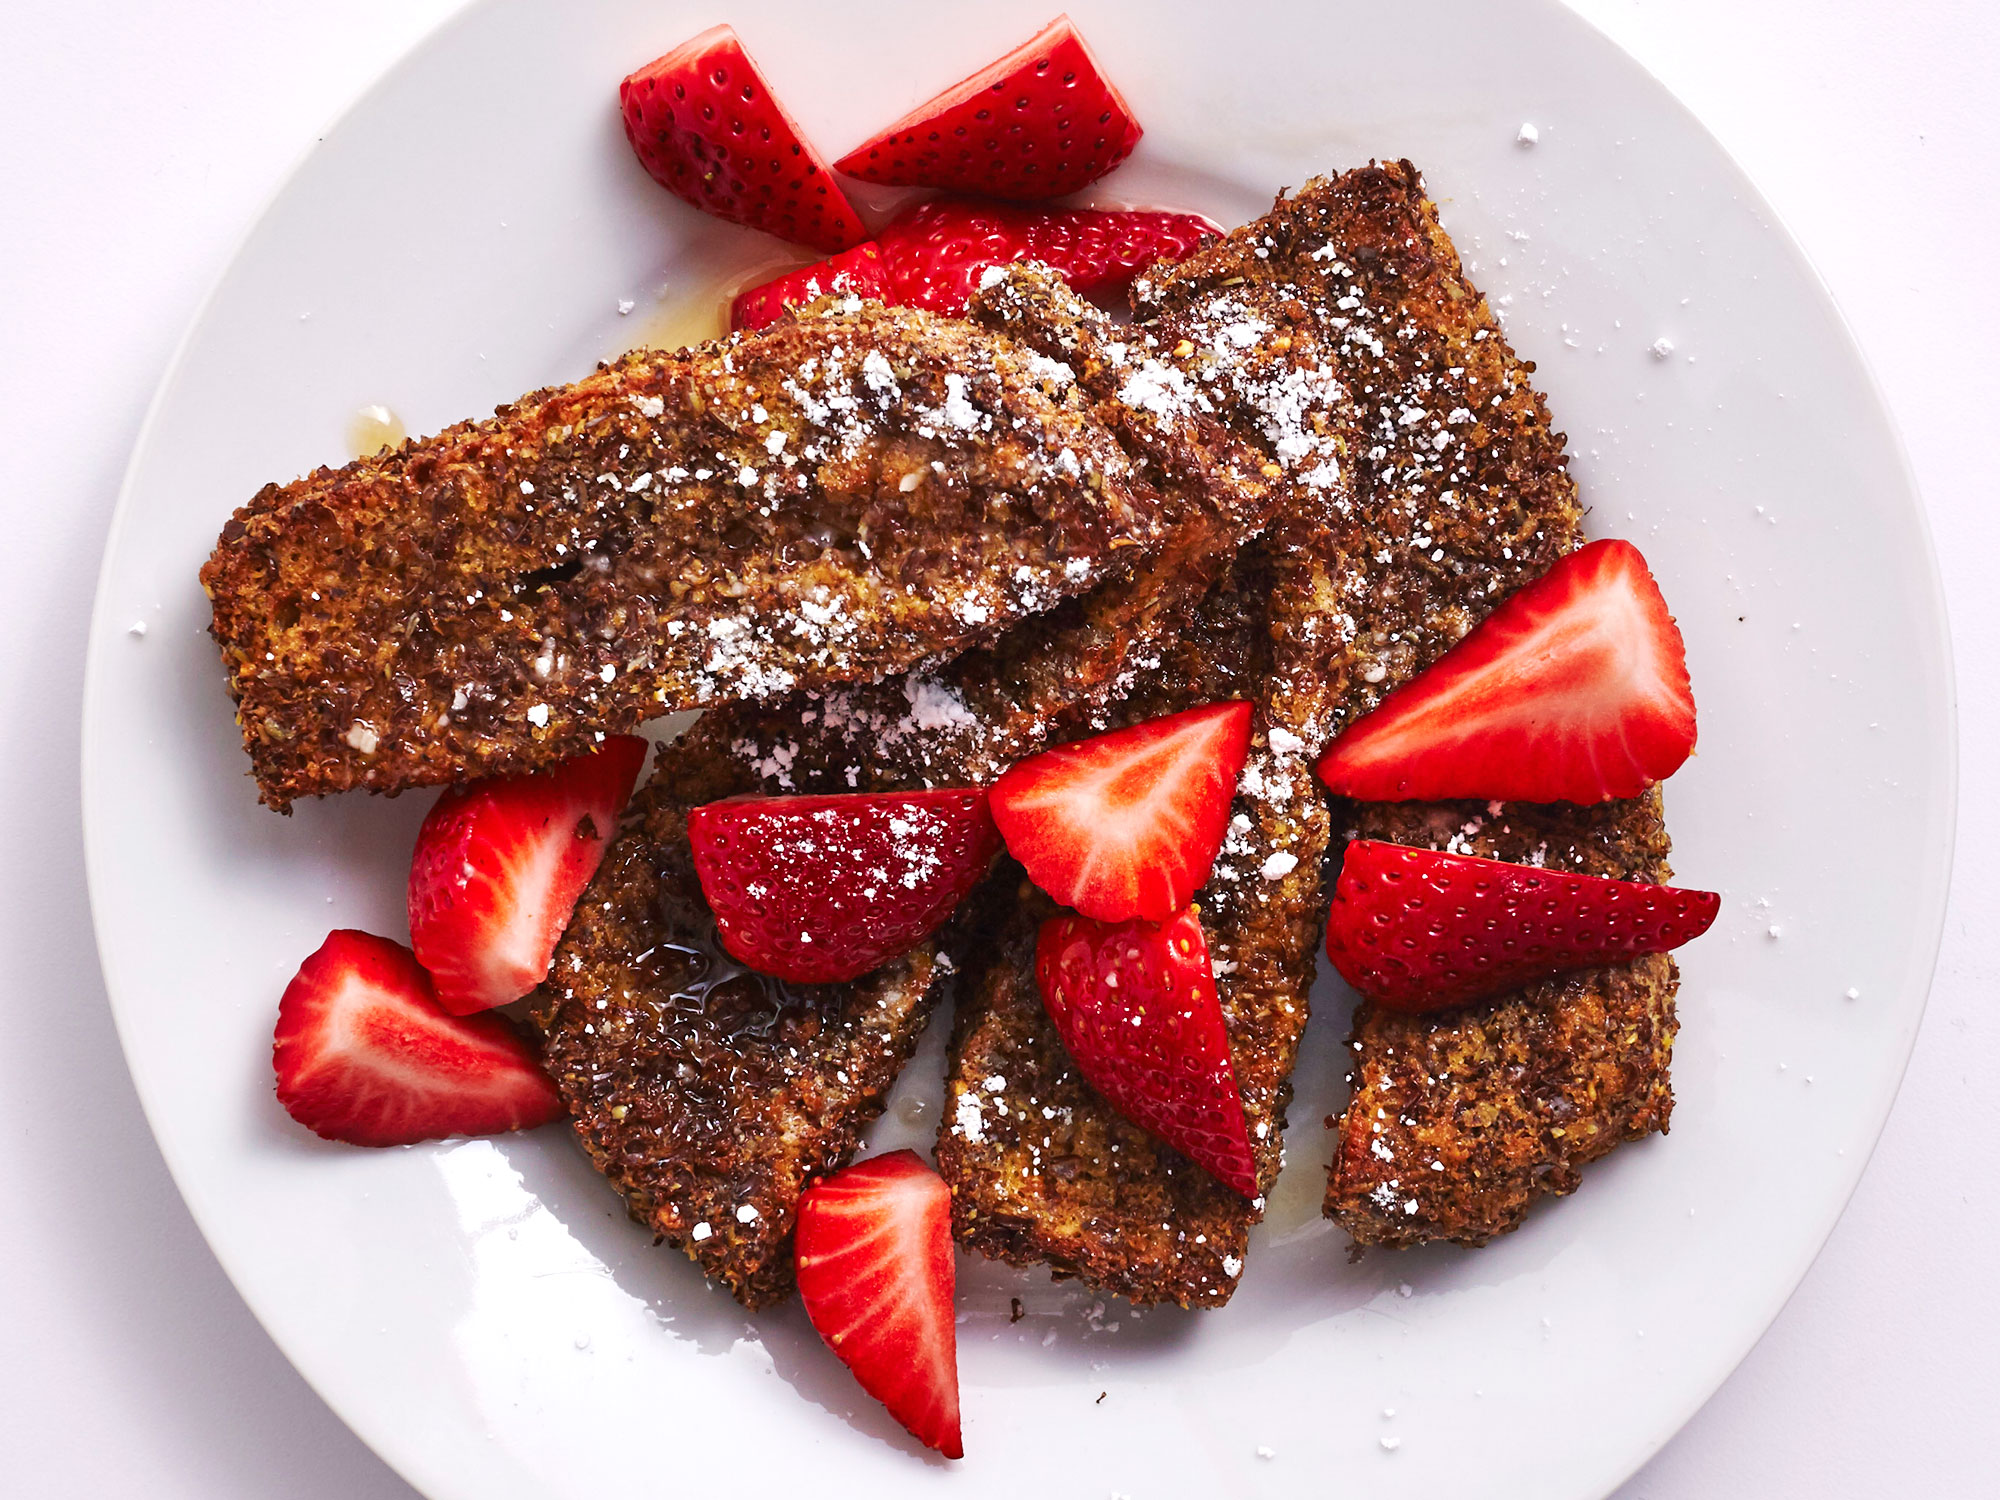 Air-Fried Flax Seed French Toast Sticks With Berries